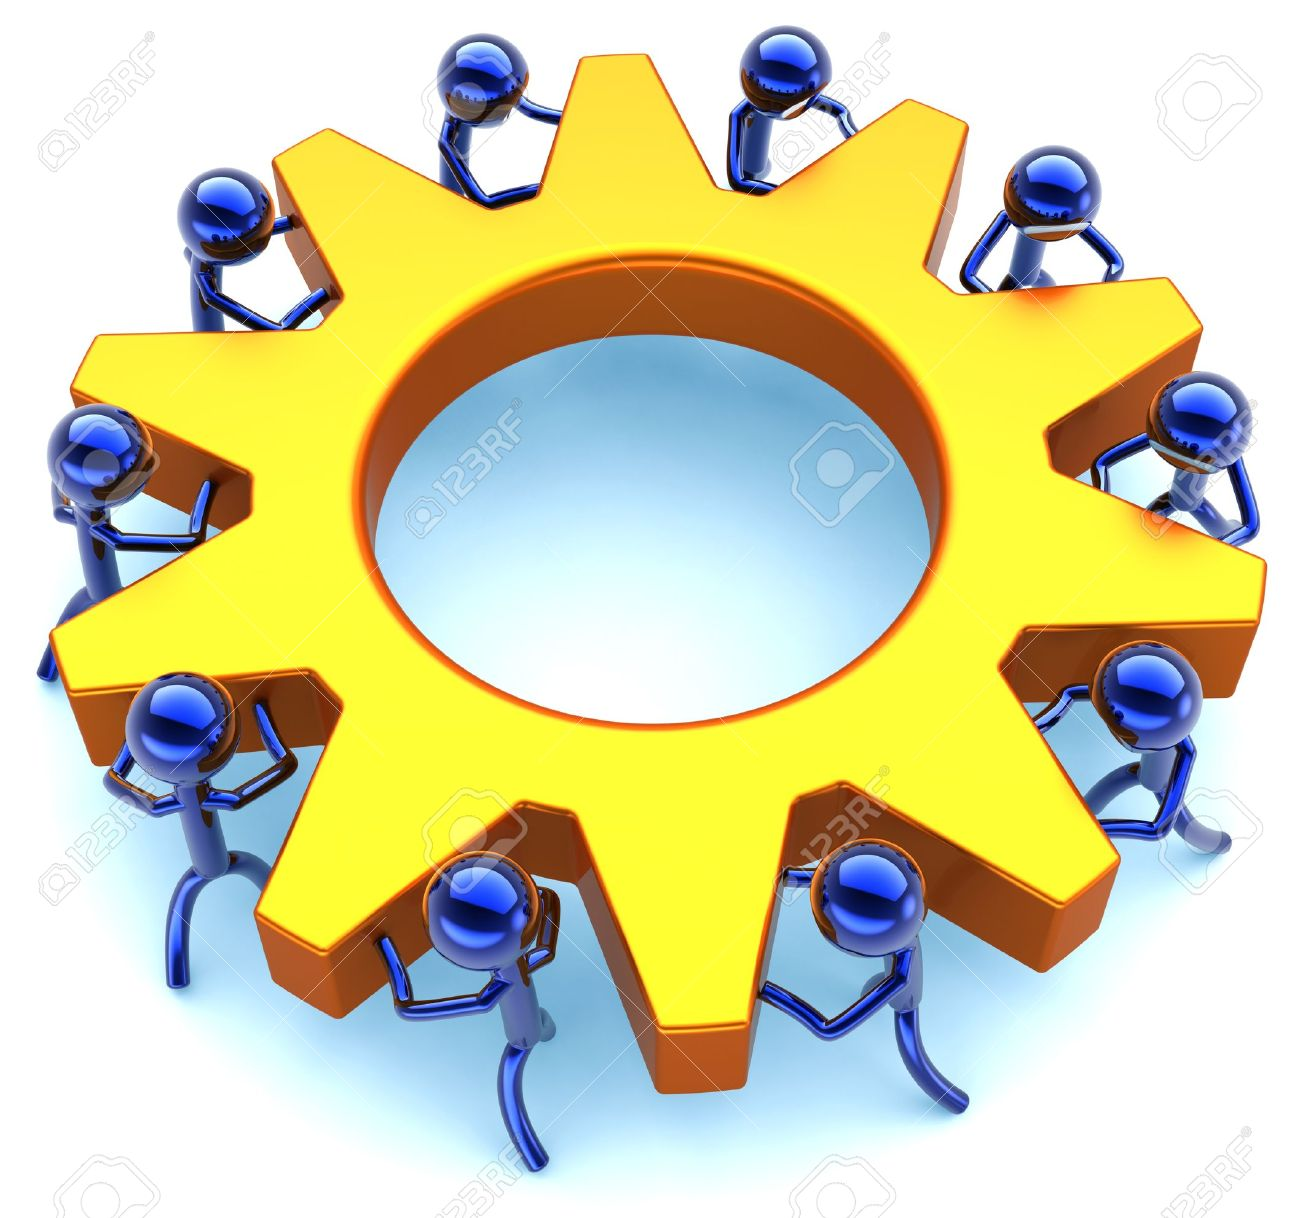 Business teamwork process community efficiency cooperation community efficiency cooperation abstract success of team concept stylized workers sciox Images